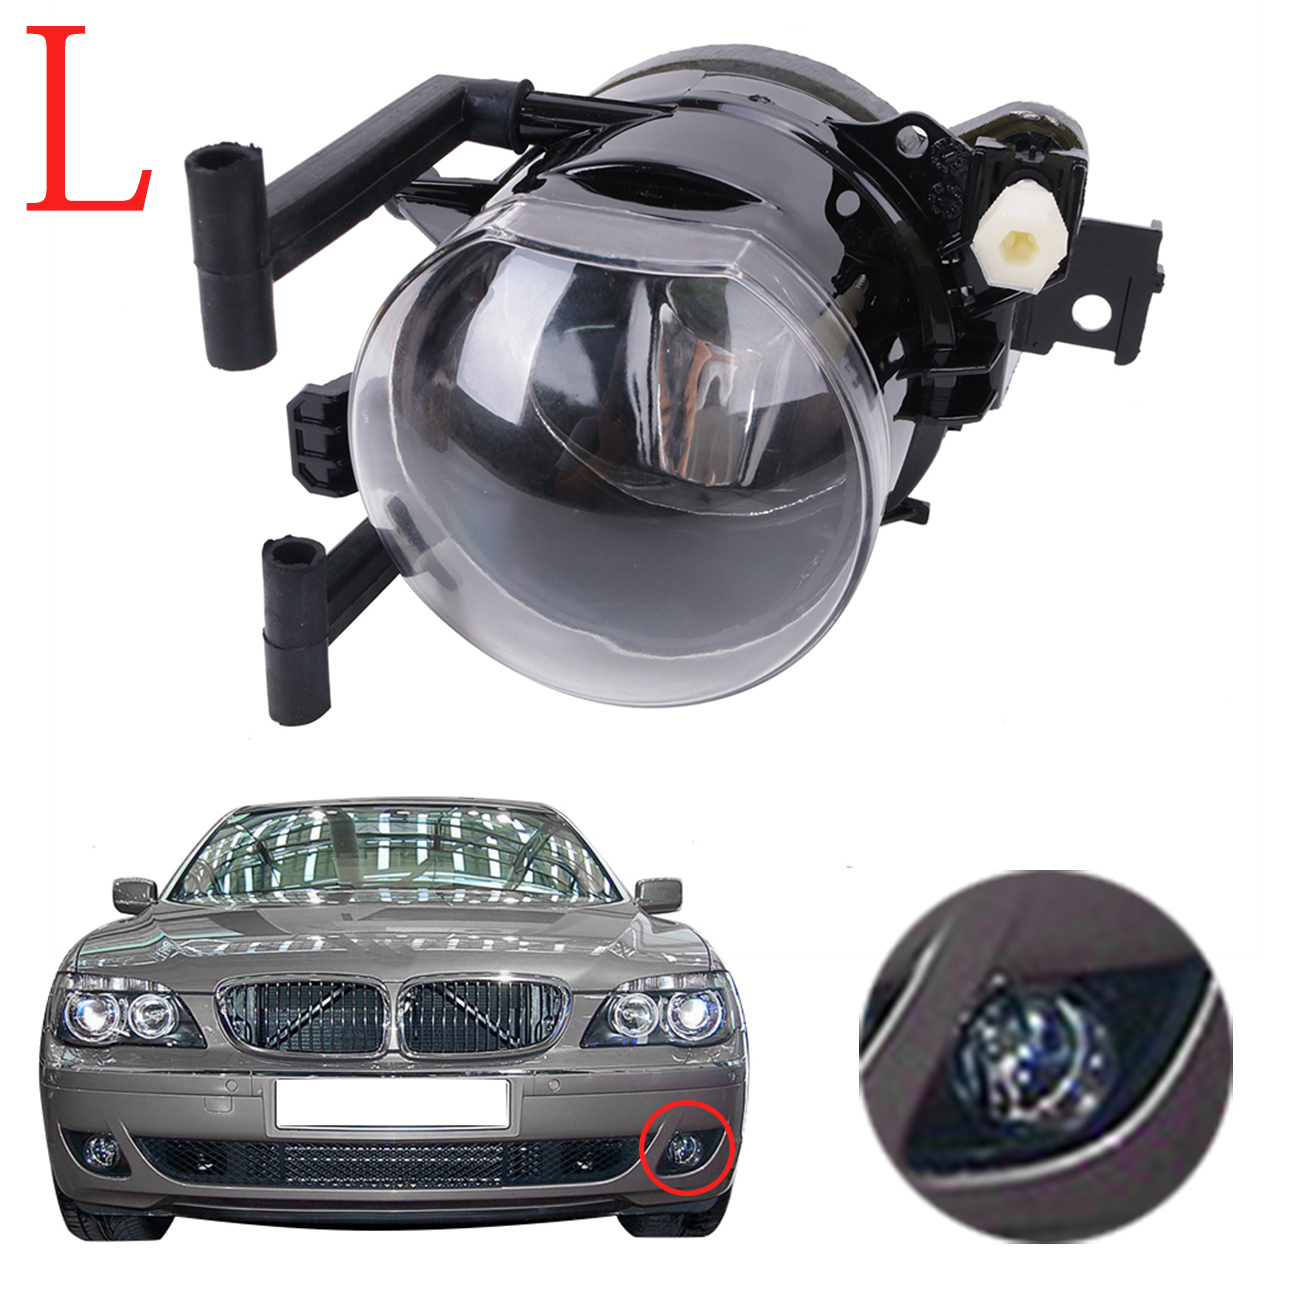 Left Side Car Lower Fog Light Lamp Foglamp For BMW 7 Series 745i 745Li 750i 750Li 760i 760Li E65 E66 Facelift 2005-2008 #W082-L